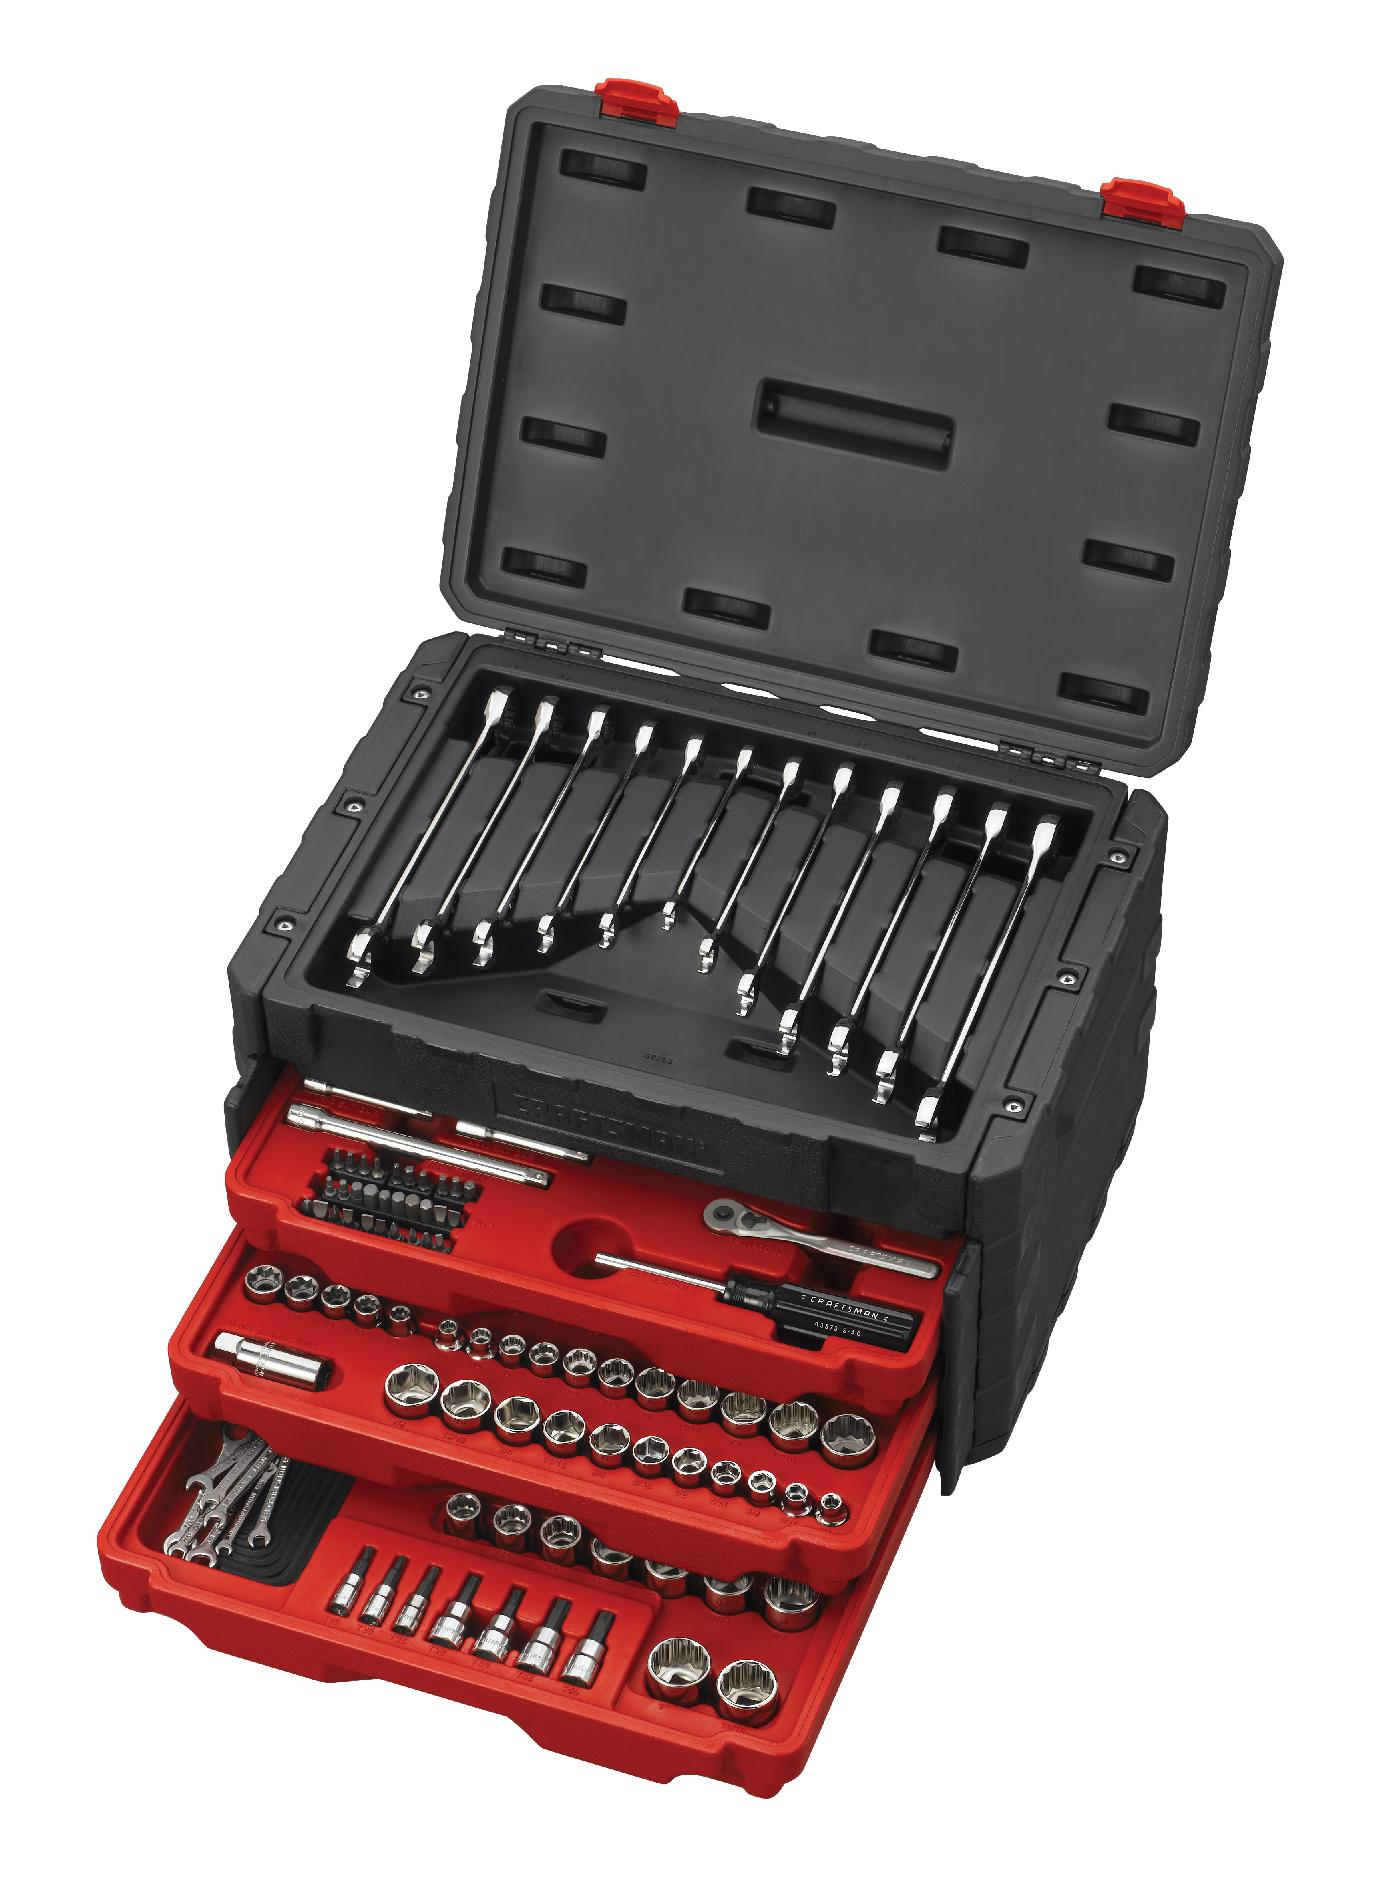 Craftsman 263 PC Mechanics Tool Set